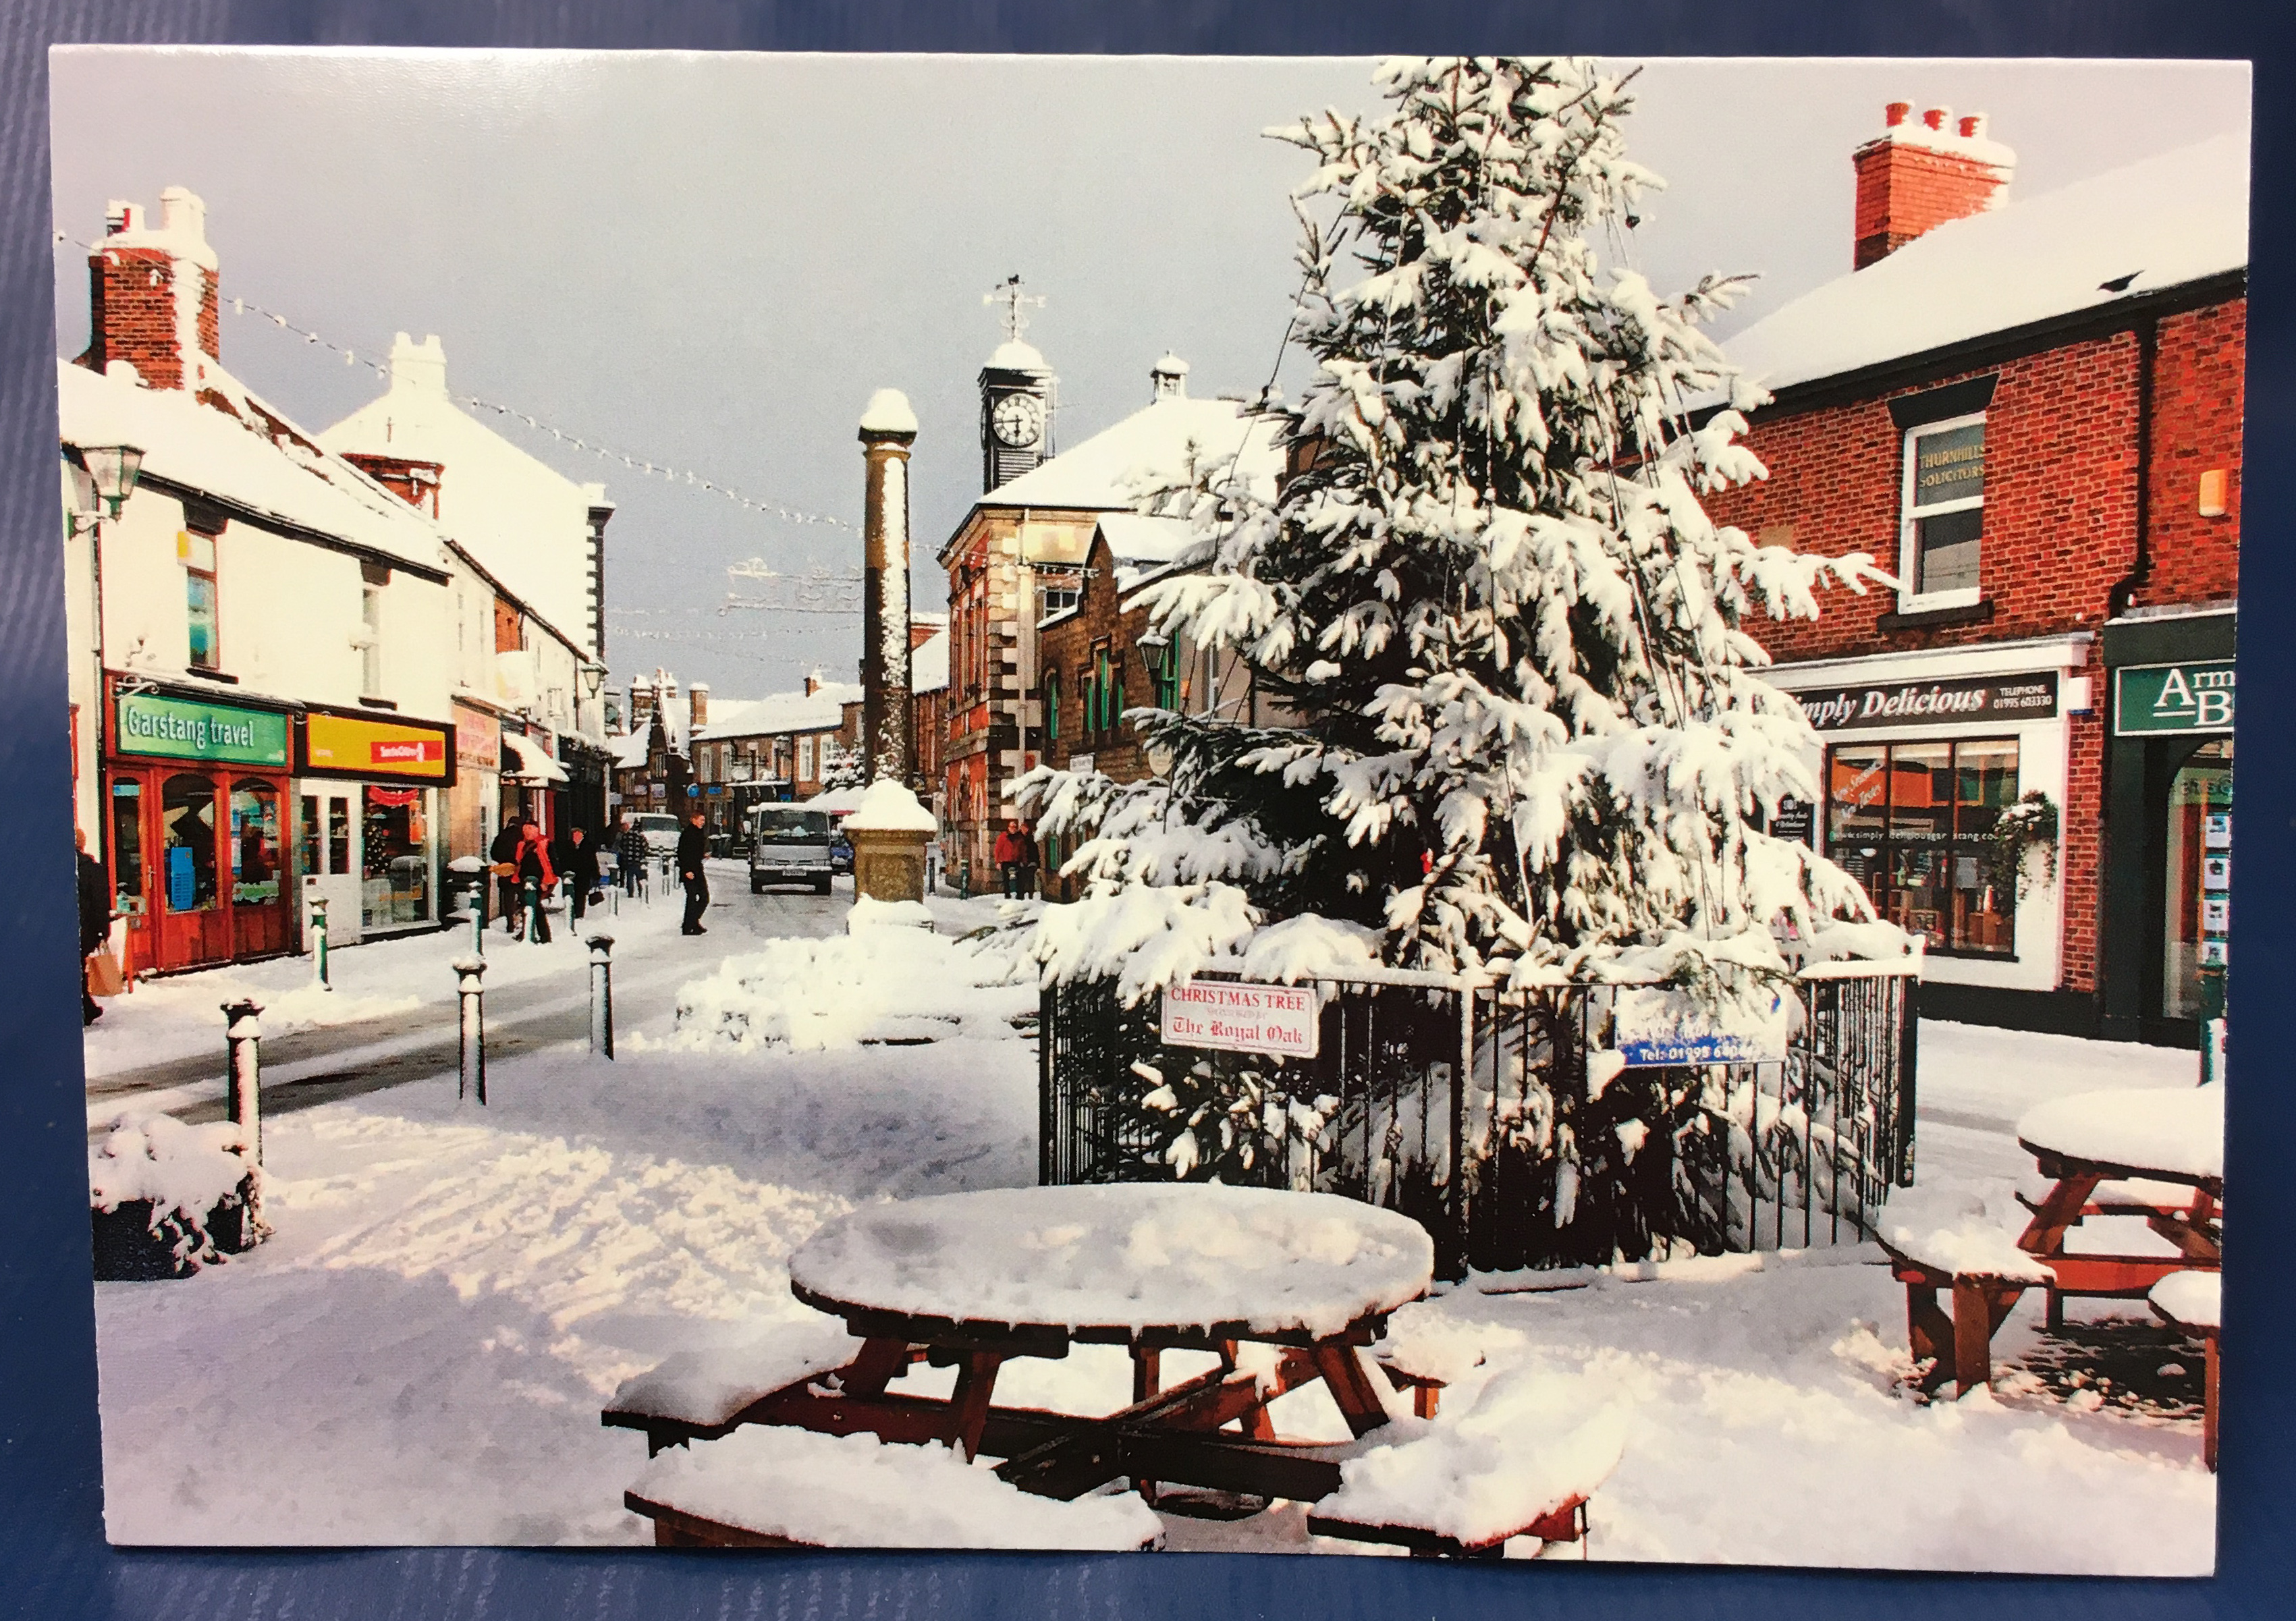 Above: Best Wishes of Garstang commissioned its own charity Christmas cards this year, supporting its local branch of Cardiac Risk in the Young, including this image of Garstang in the snow supplied by local photographer Mike Coleran, which are selling very well.